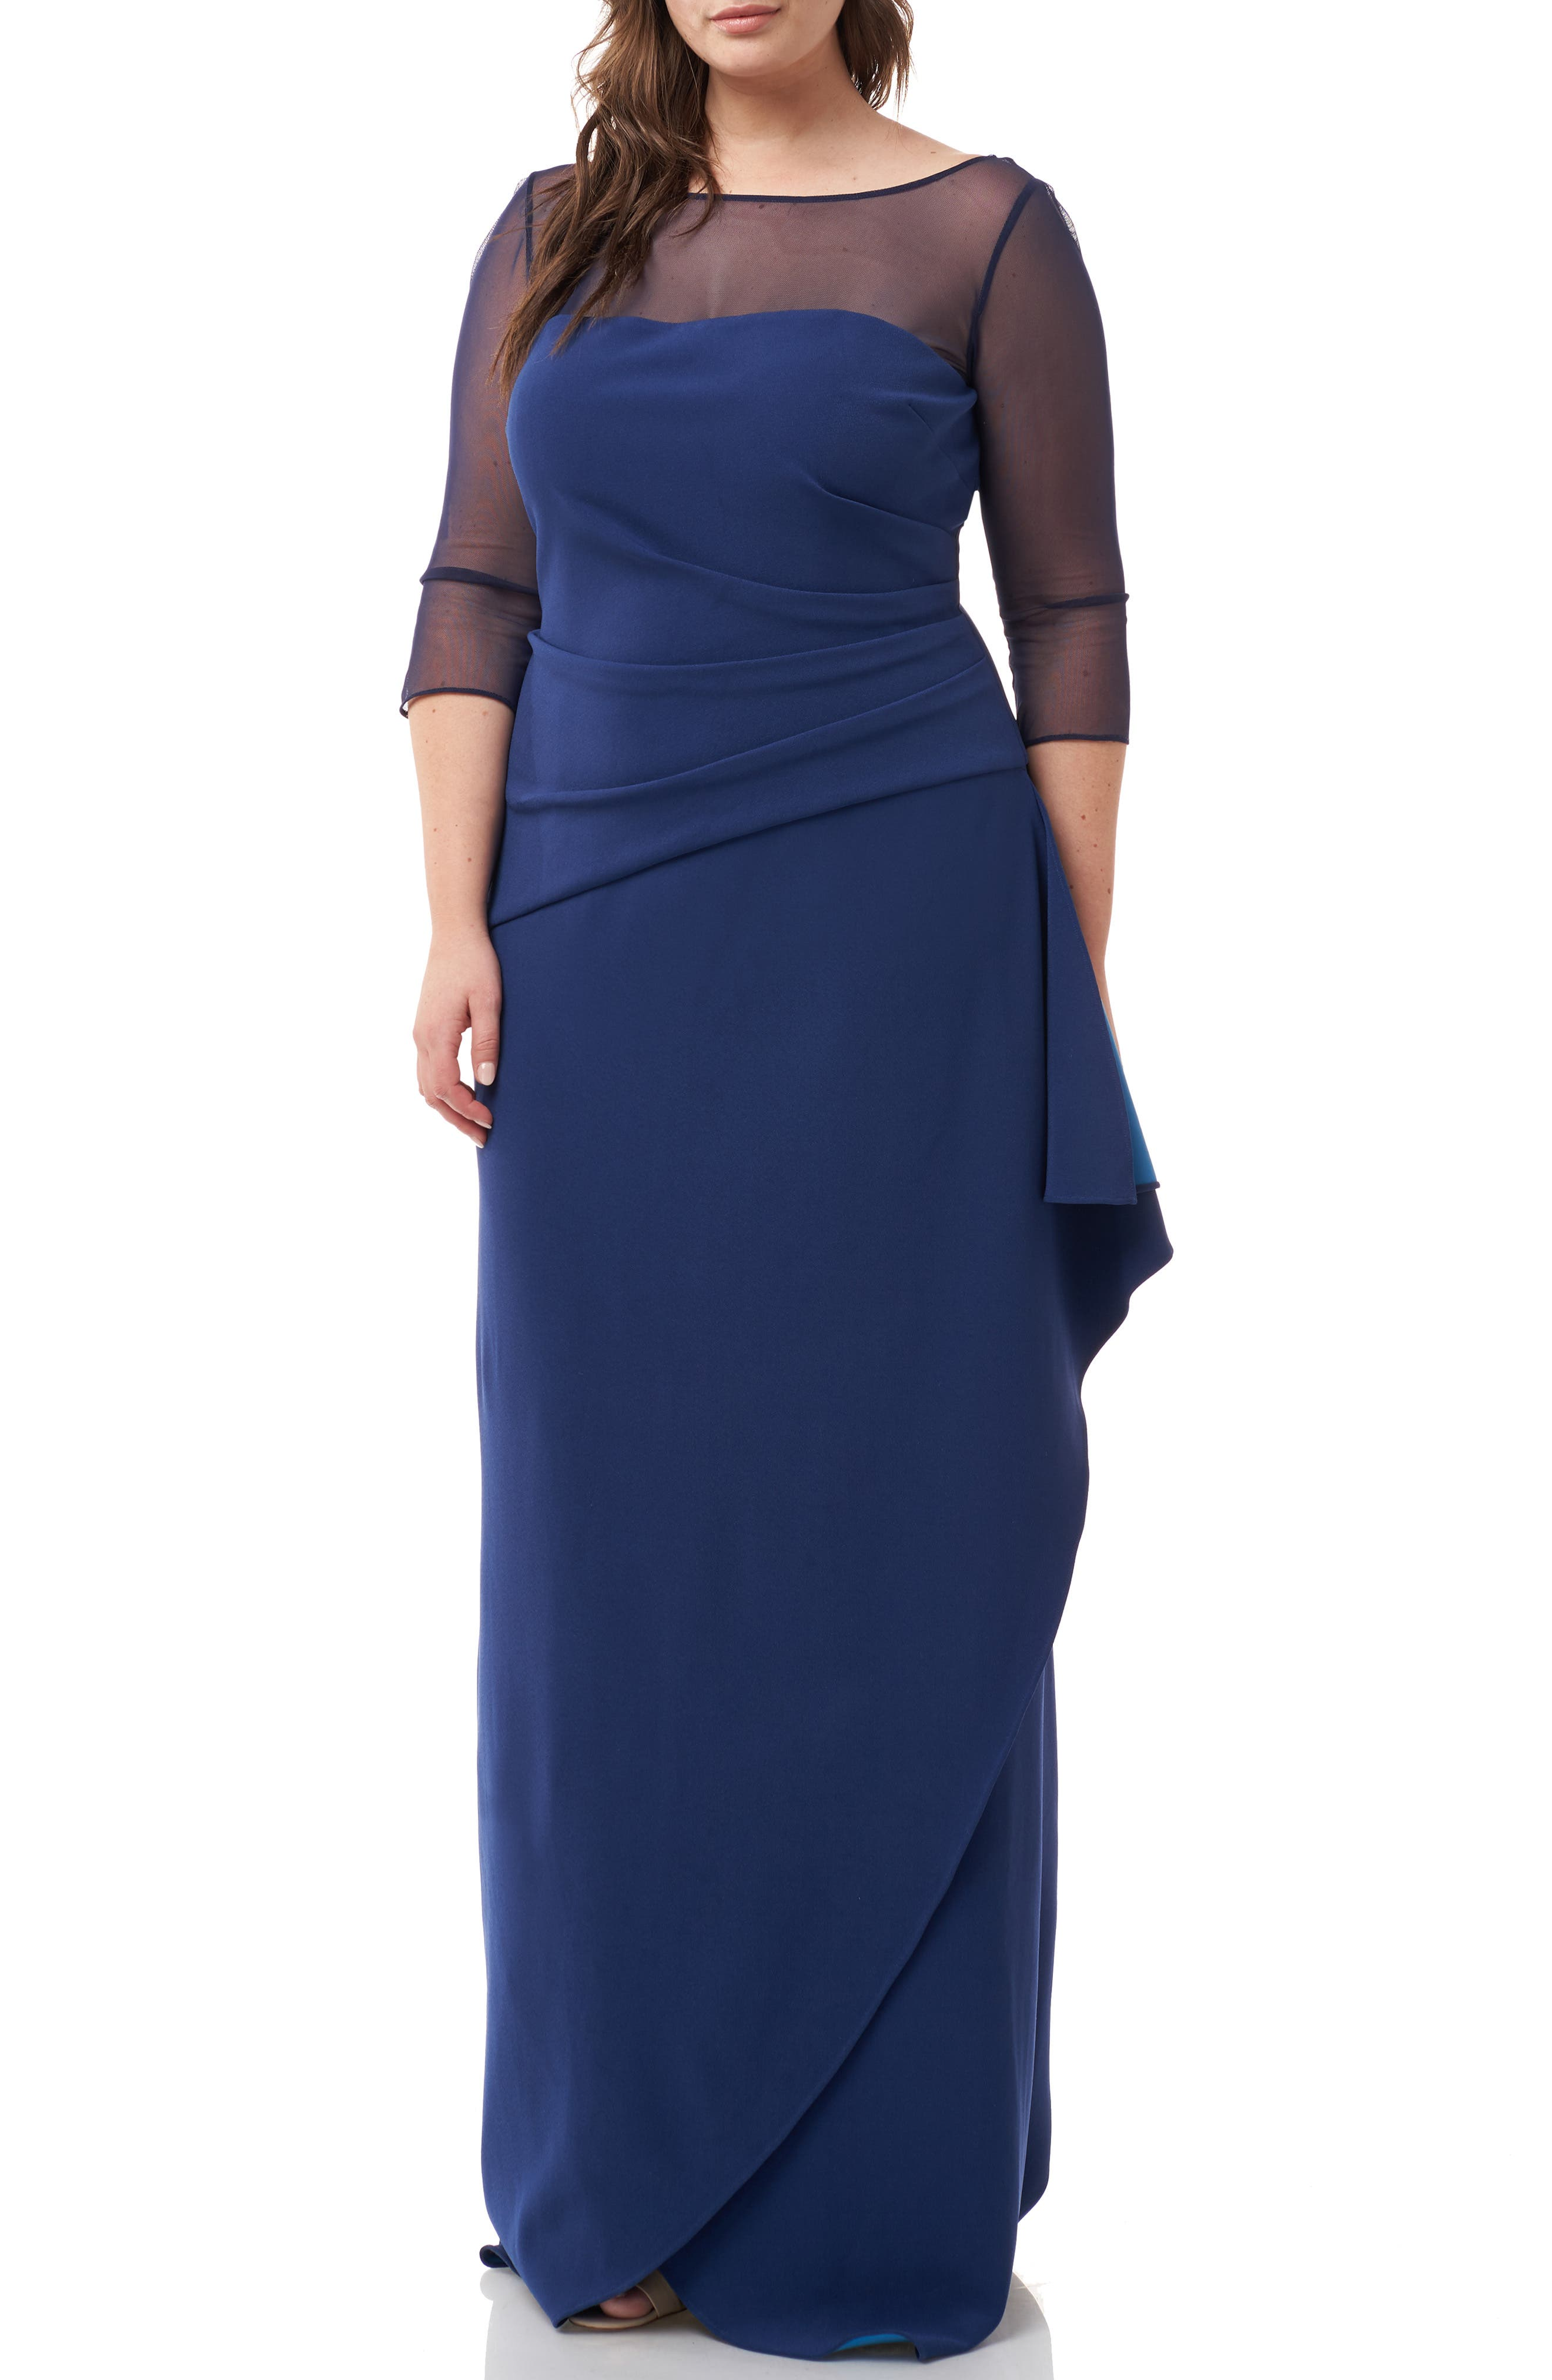 Plus Size Js Collections Ruched Crepe Evening Dress, Blue